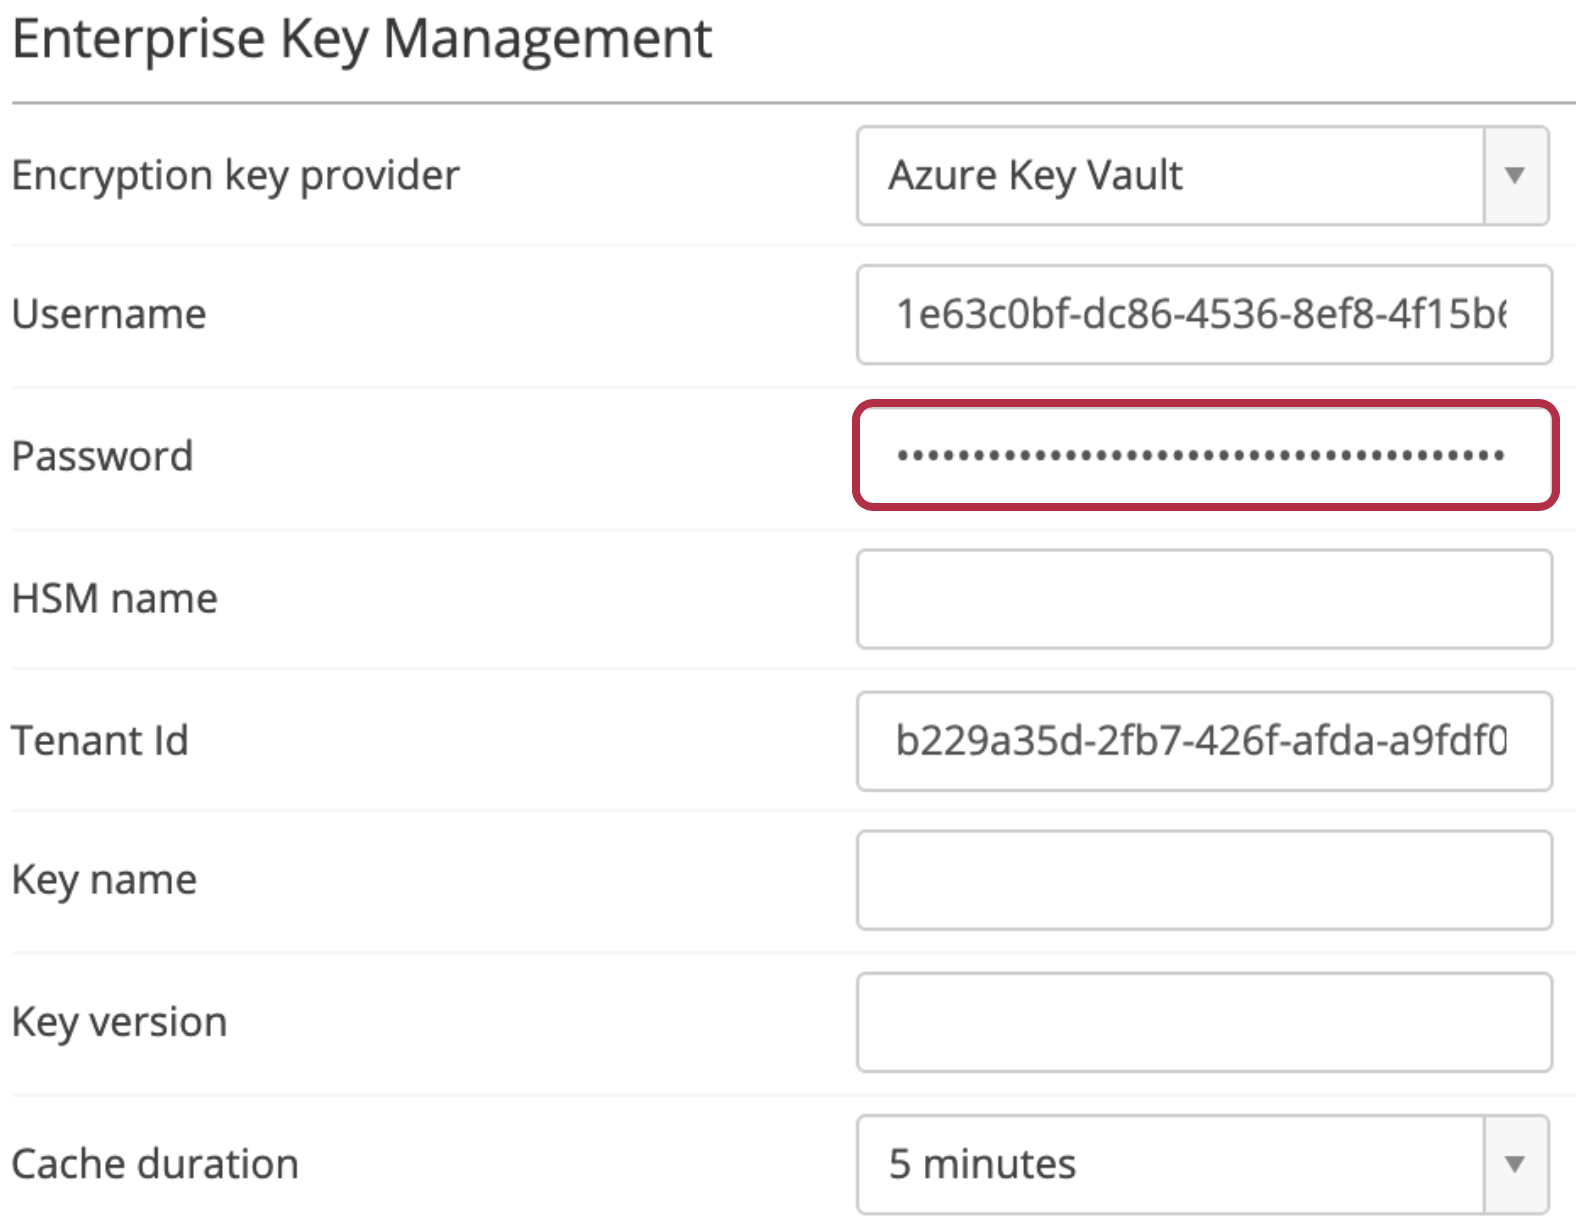 Configure Enterprise Key Management - Azure Key Vault – Egnyte